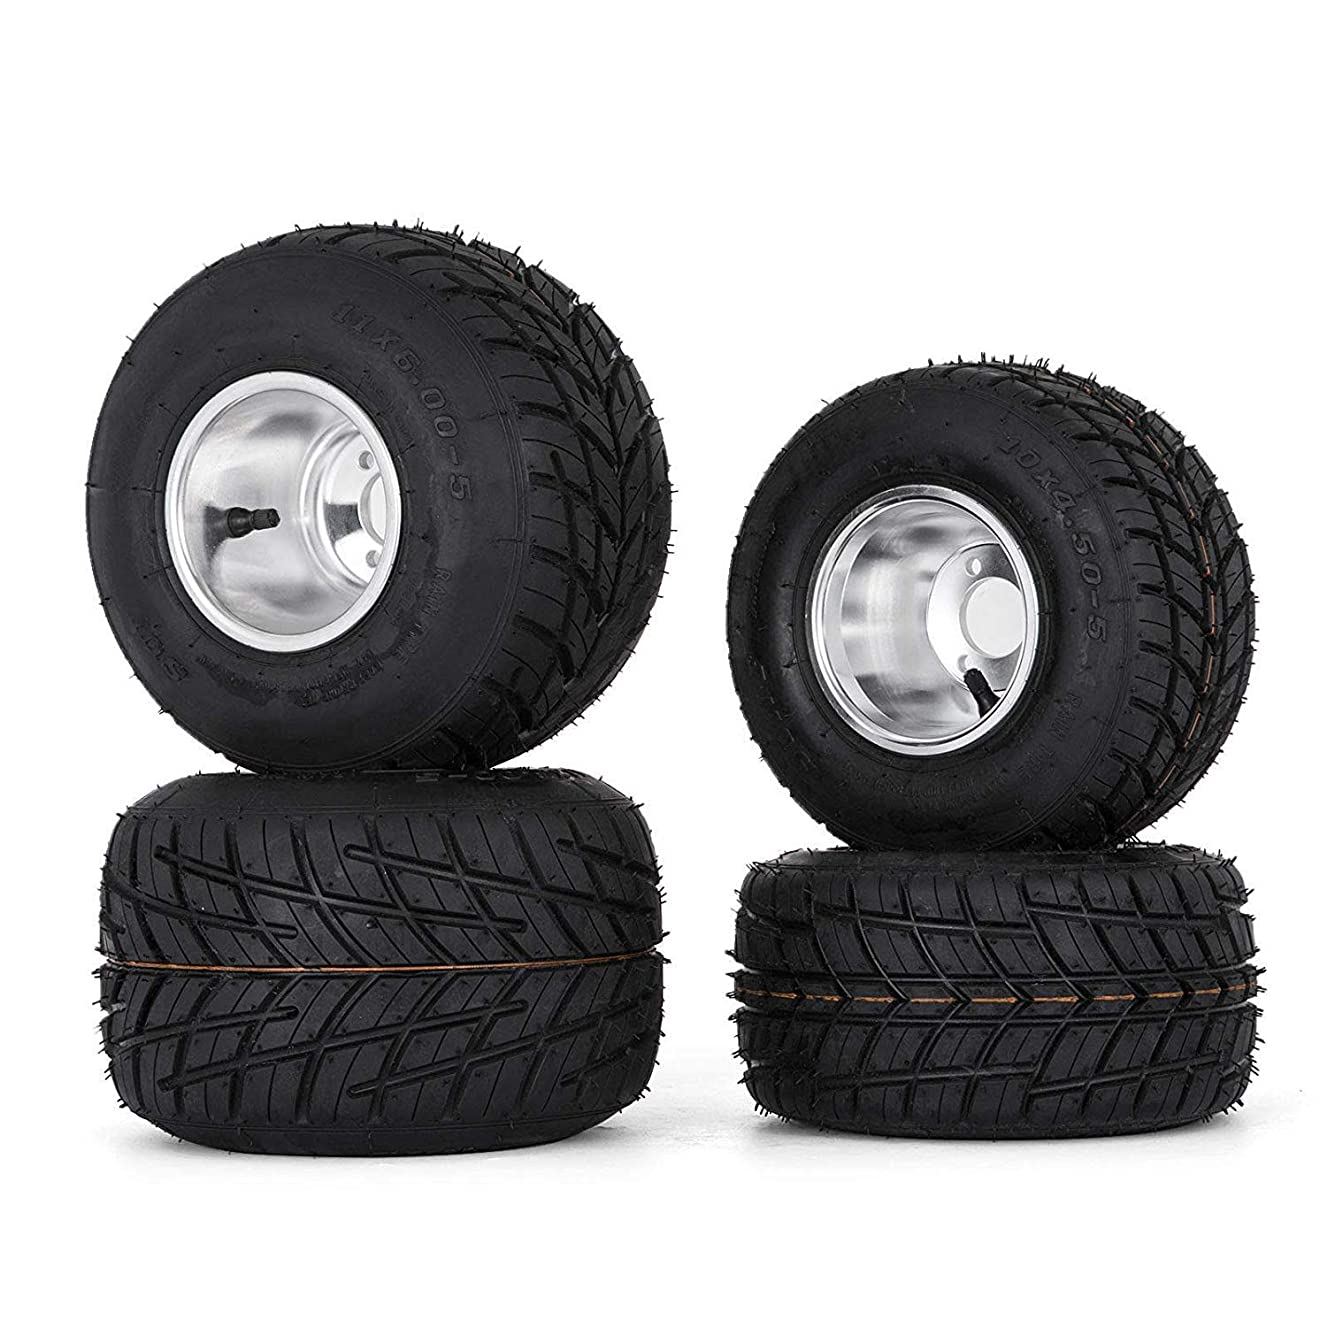 Bestauto Go Kart Tires and Rims 10x4.50-5 Front 11x6.0-5 Rear Go Kart Wheels and Tires Sets of 4